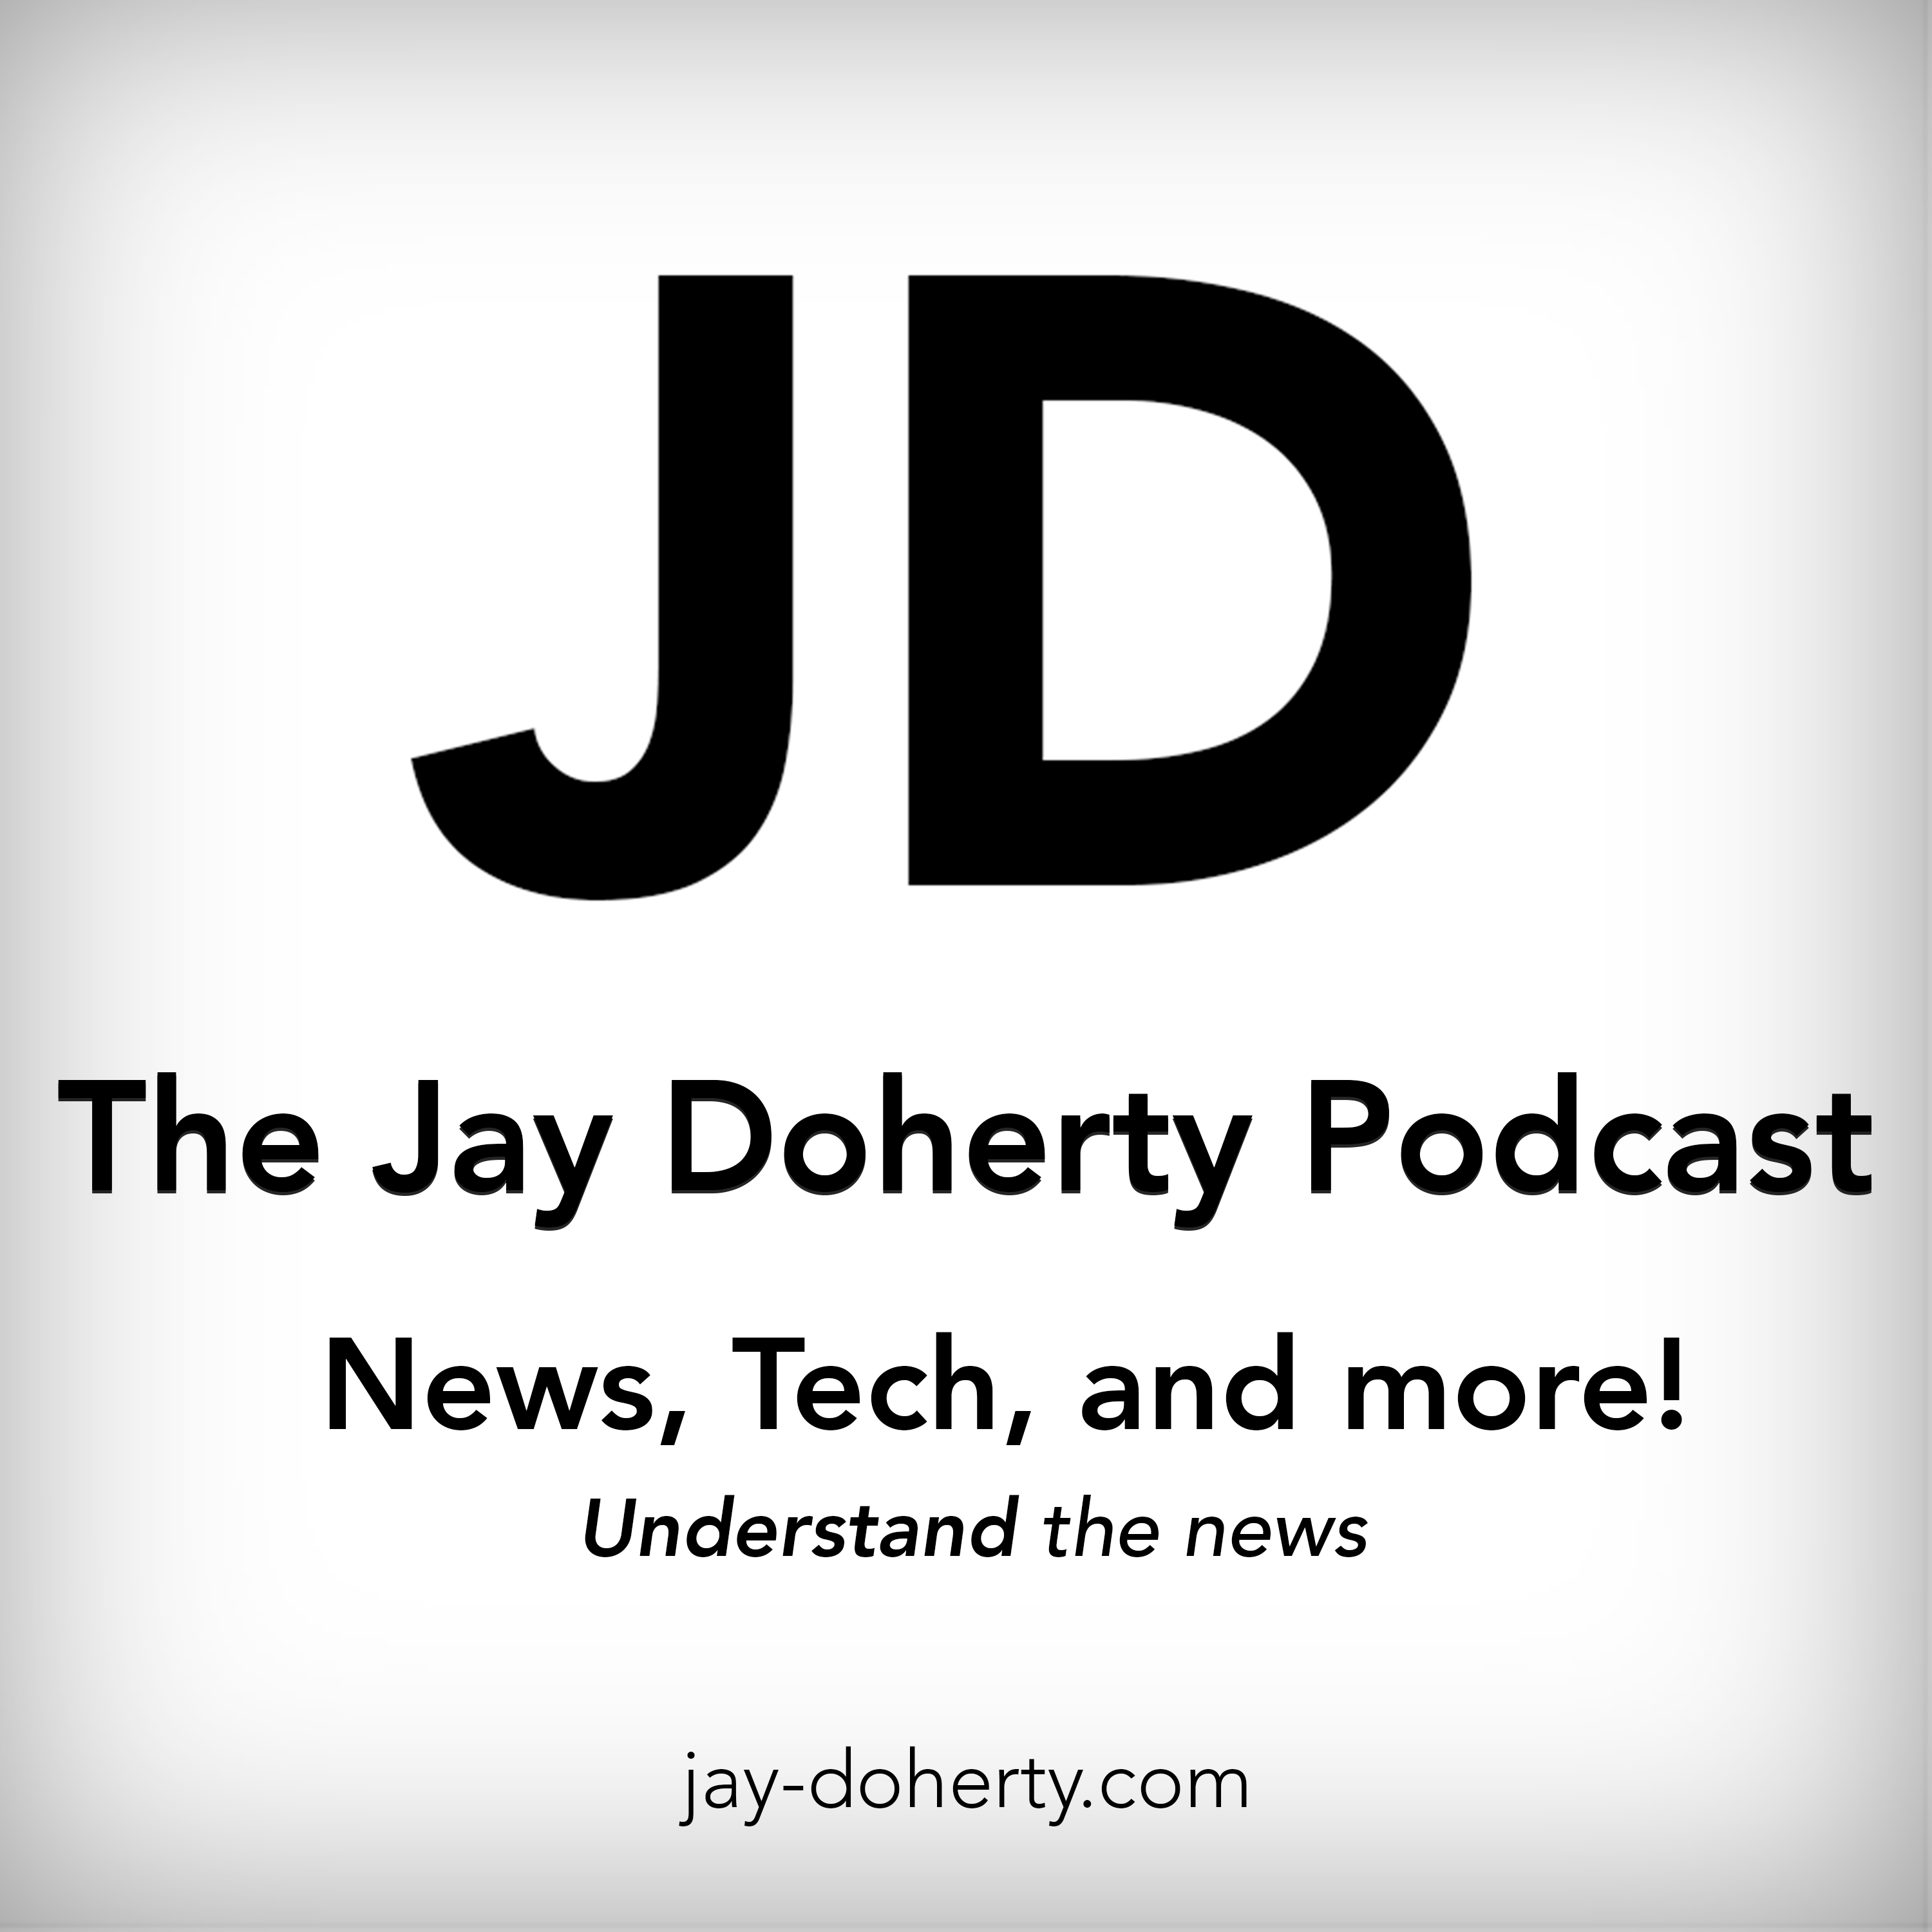 The Jay Doherty Podcast